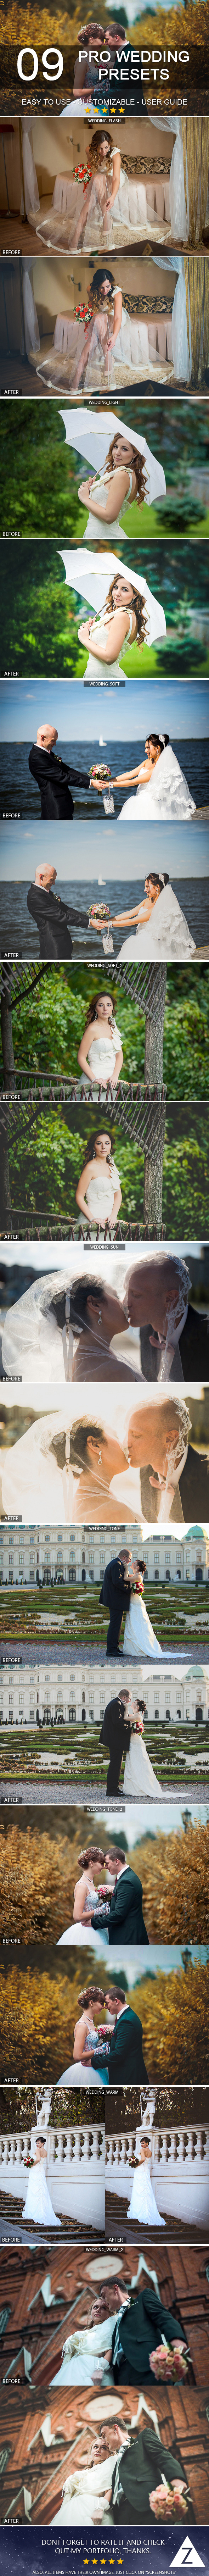 9 Pro Wedding Presets - Lightroom Presets Add-ons